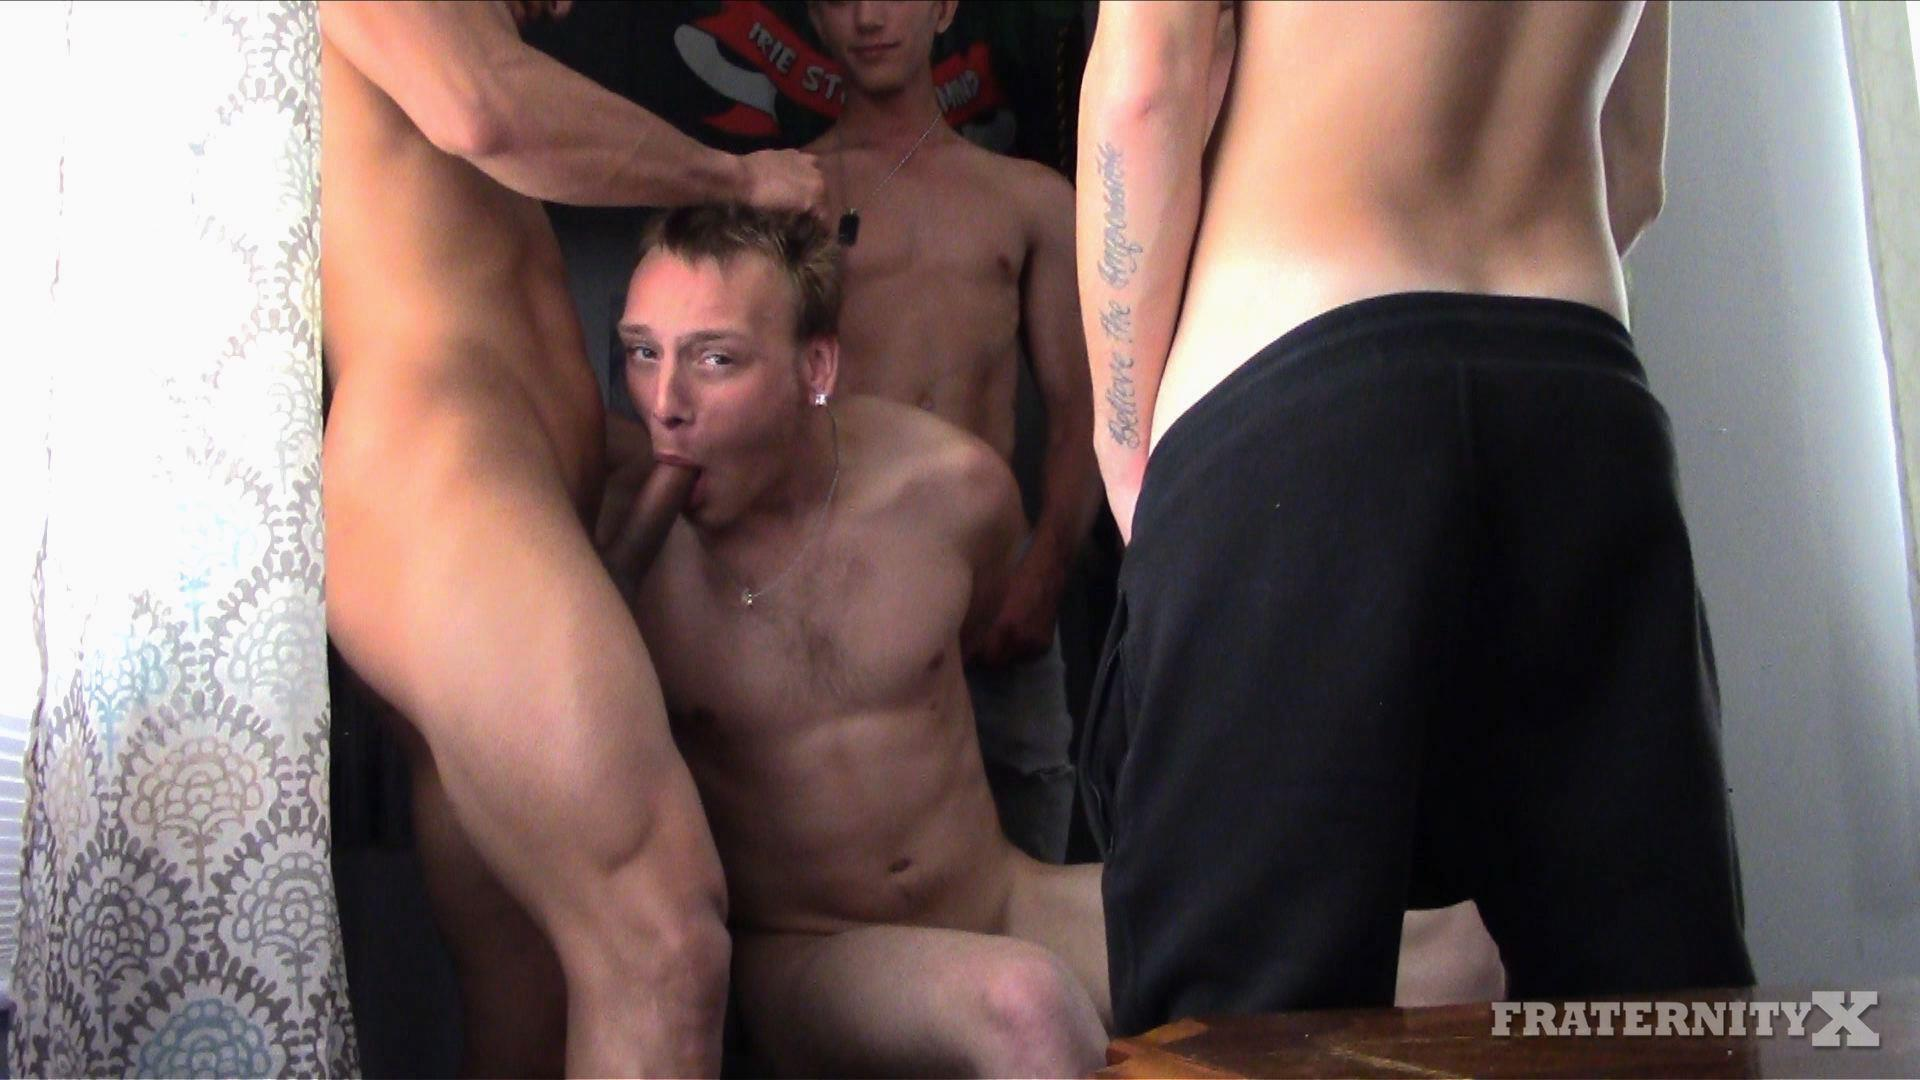 Fraternity-X-Naked-Frat-Boys-Gay-Sex-Party-Video-10 Welcome Back To School!  Frat Boys Gang Bang A Raw Freshman Ass